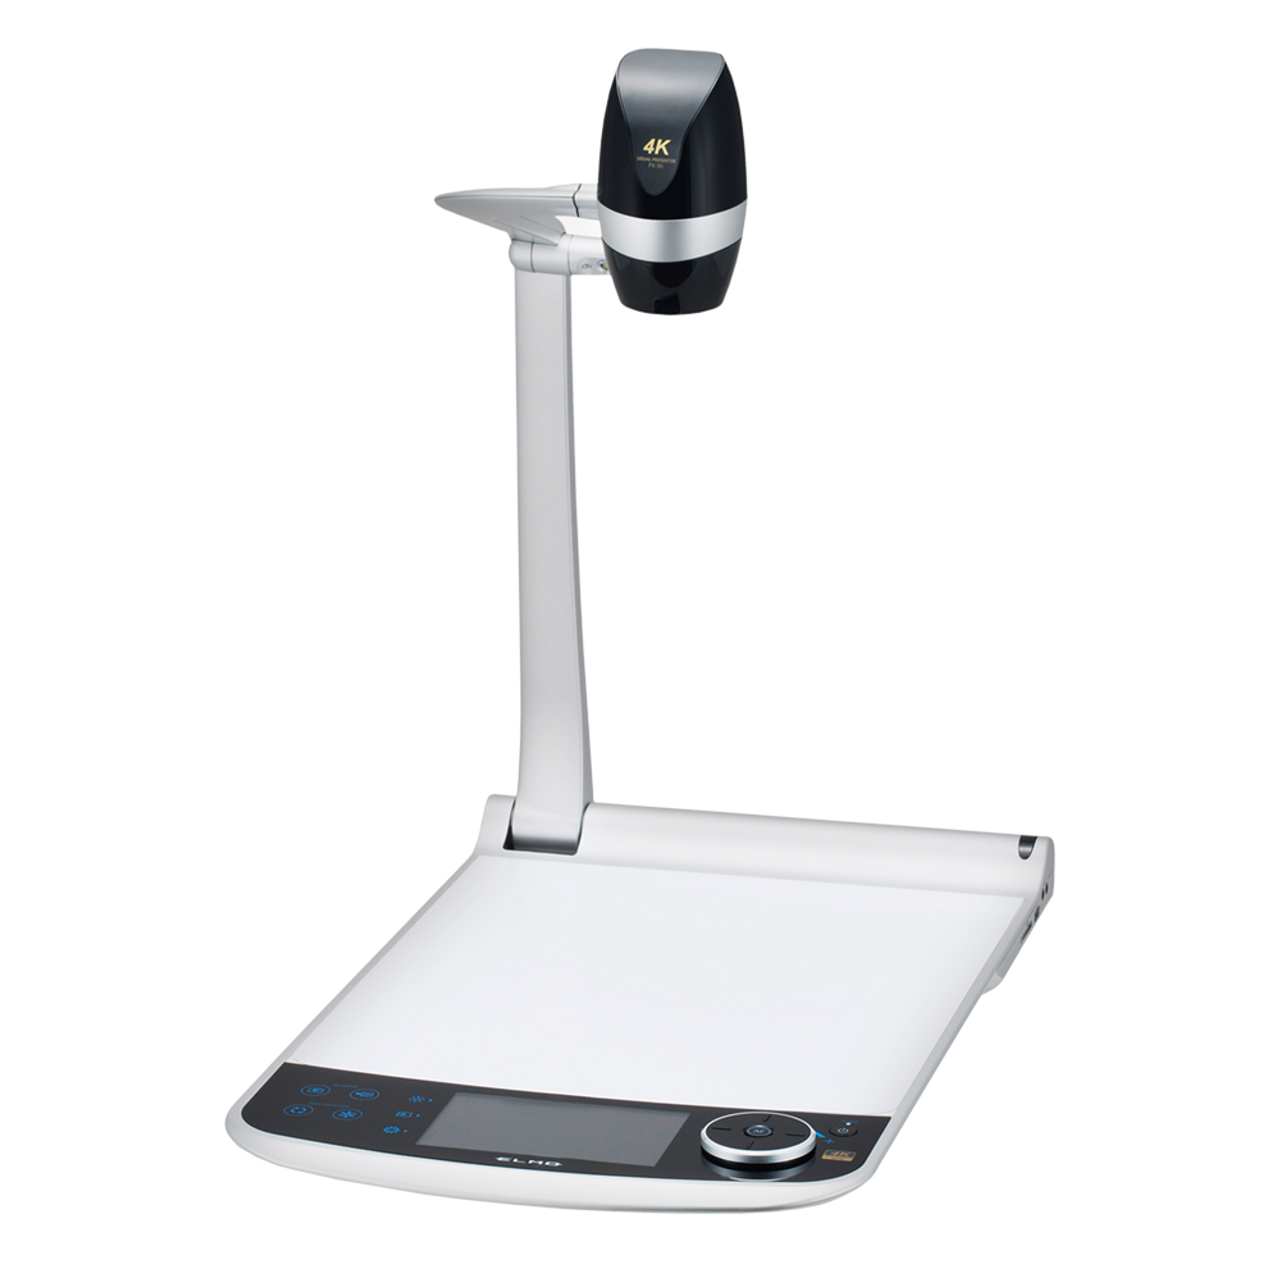 ELMO PX-30 Document camera (1364)